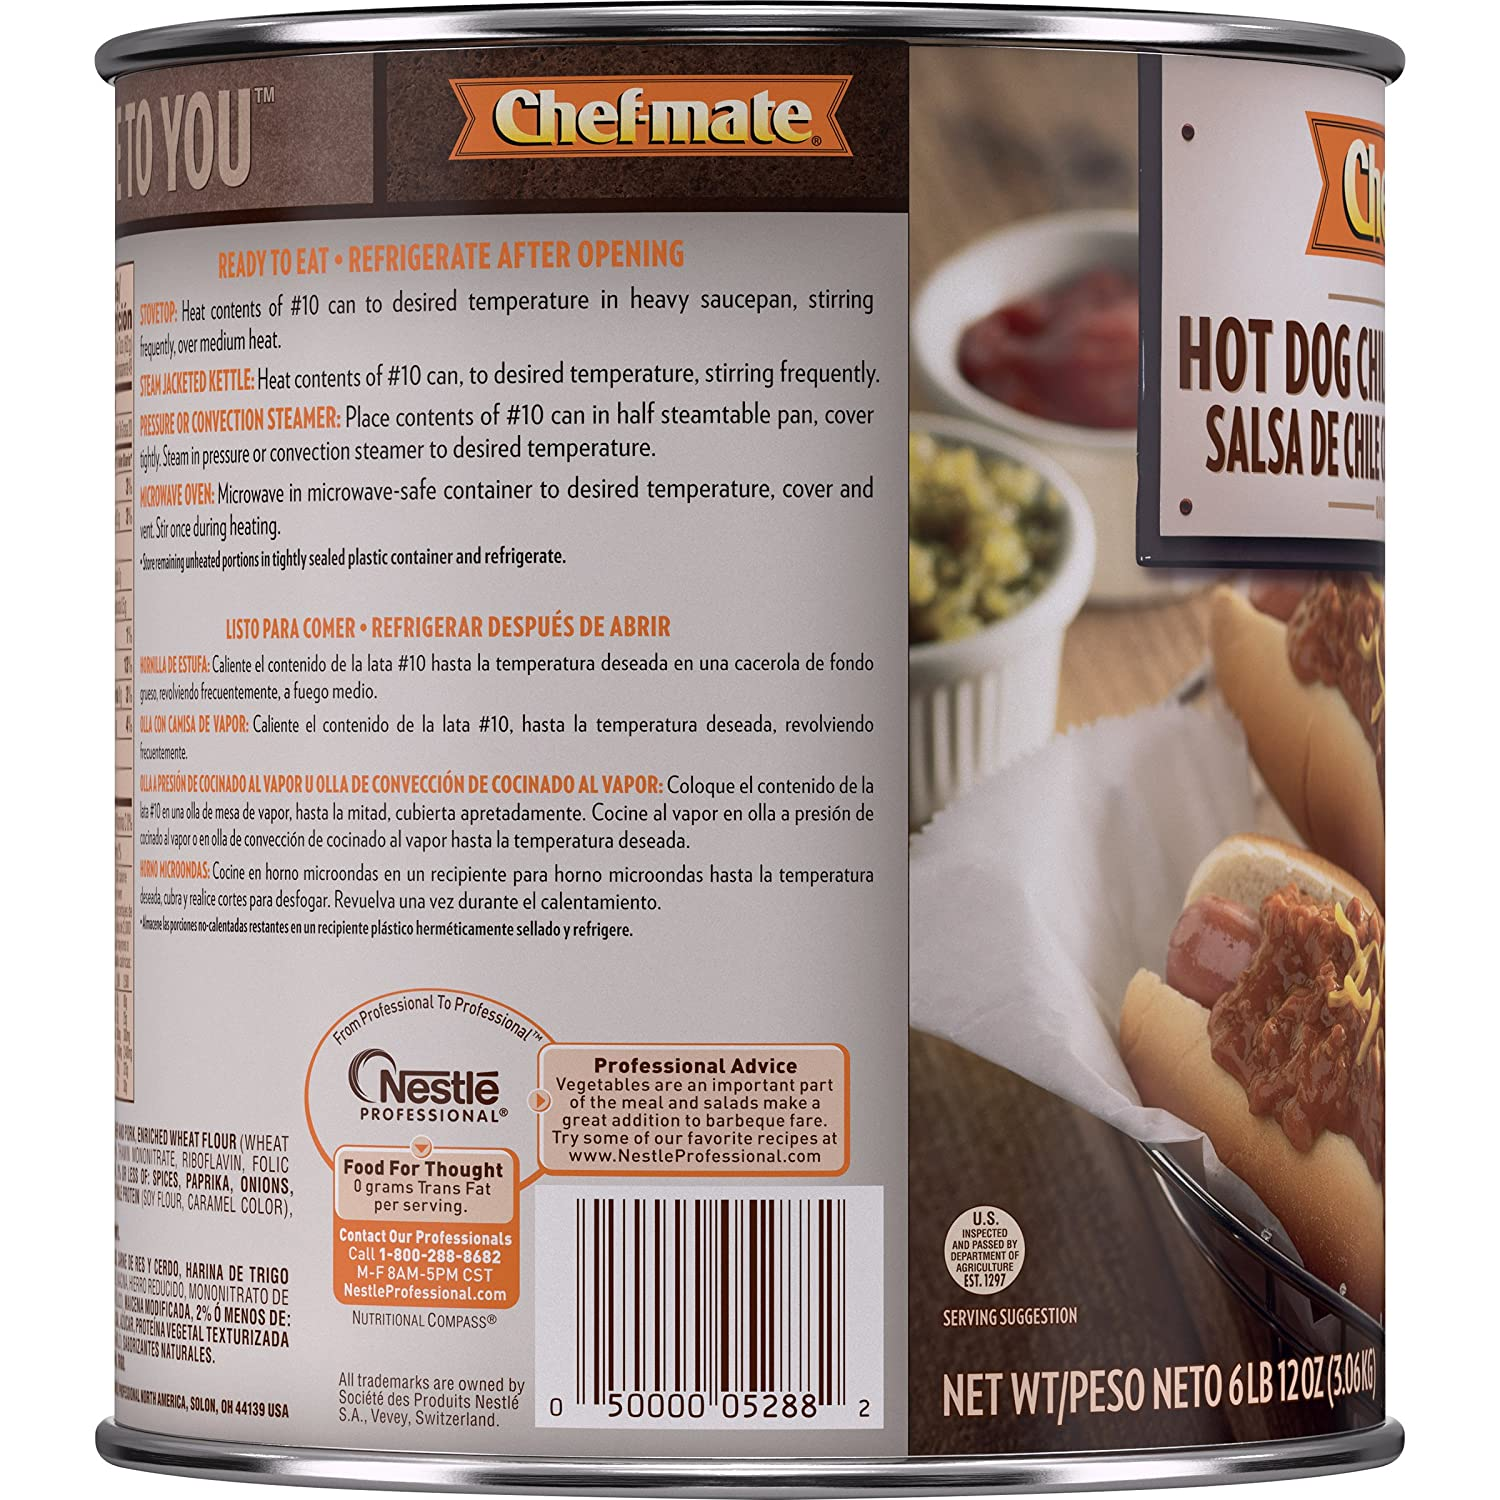 Amazon.com: Chef-mate Hot Dogs Chili, Ready to Eat Chili Sauce, Food, 0 Grams Trans Fat, 6 lb 10 oz, #10 Can (Great for Snacks, Office, Parties): Prime ...